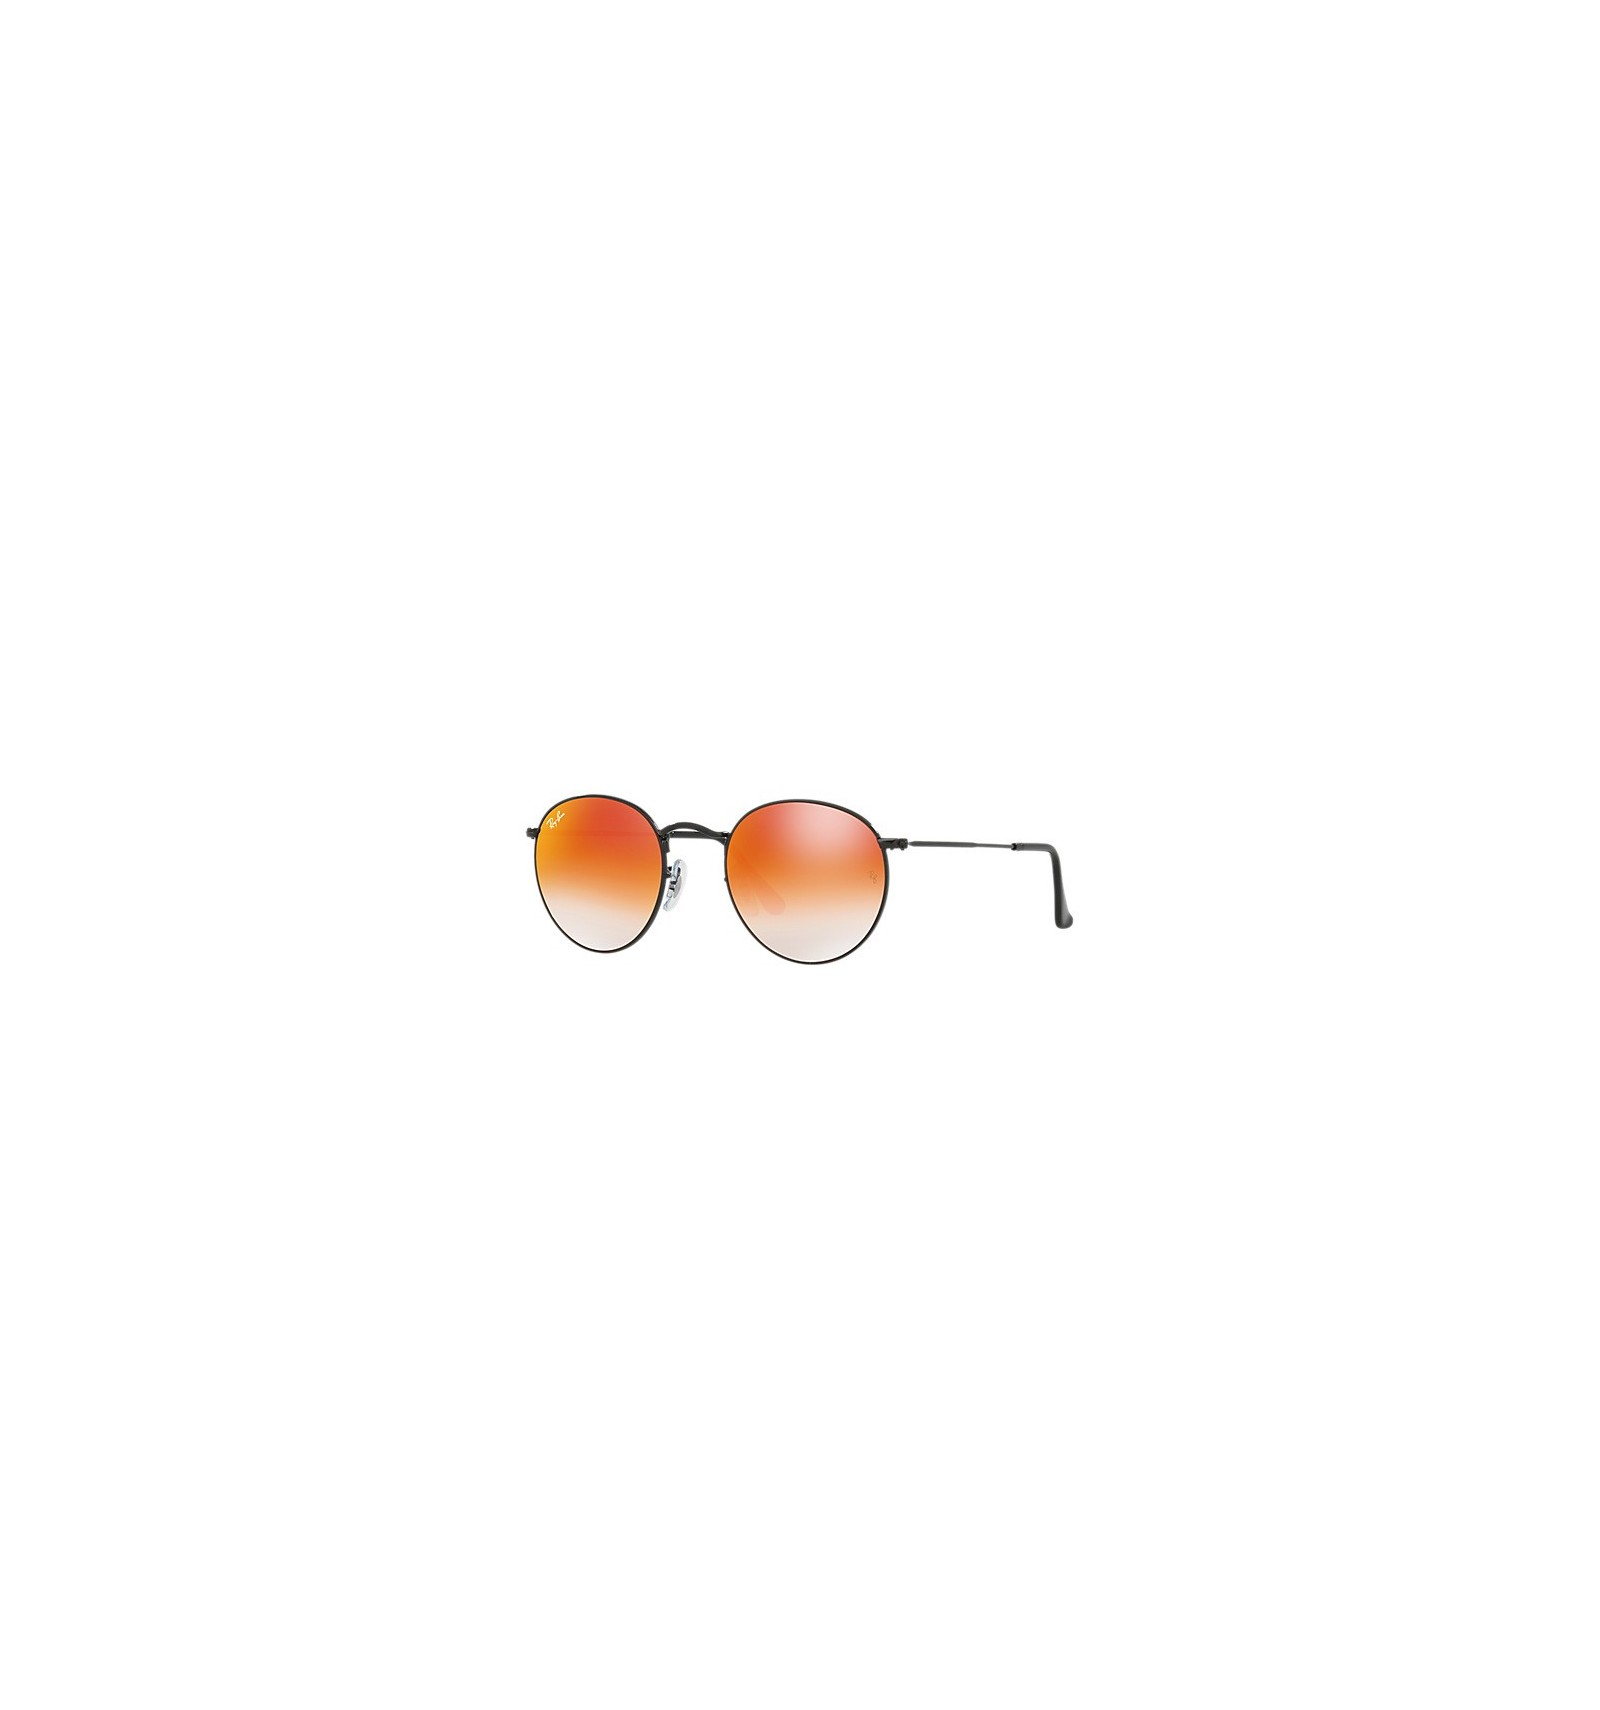 Gafas de sol RAY BAN 3447 ROUND METAL Shiny Black   Orange Mirror shaded 65fe32c2272c